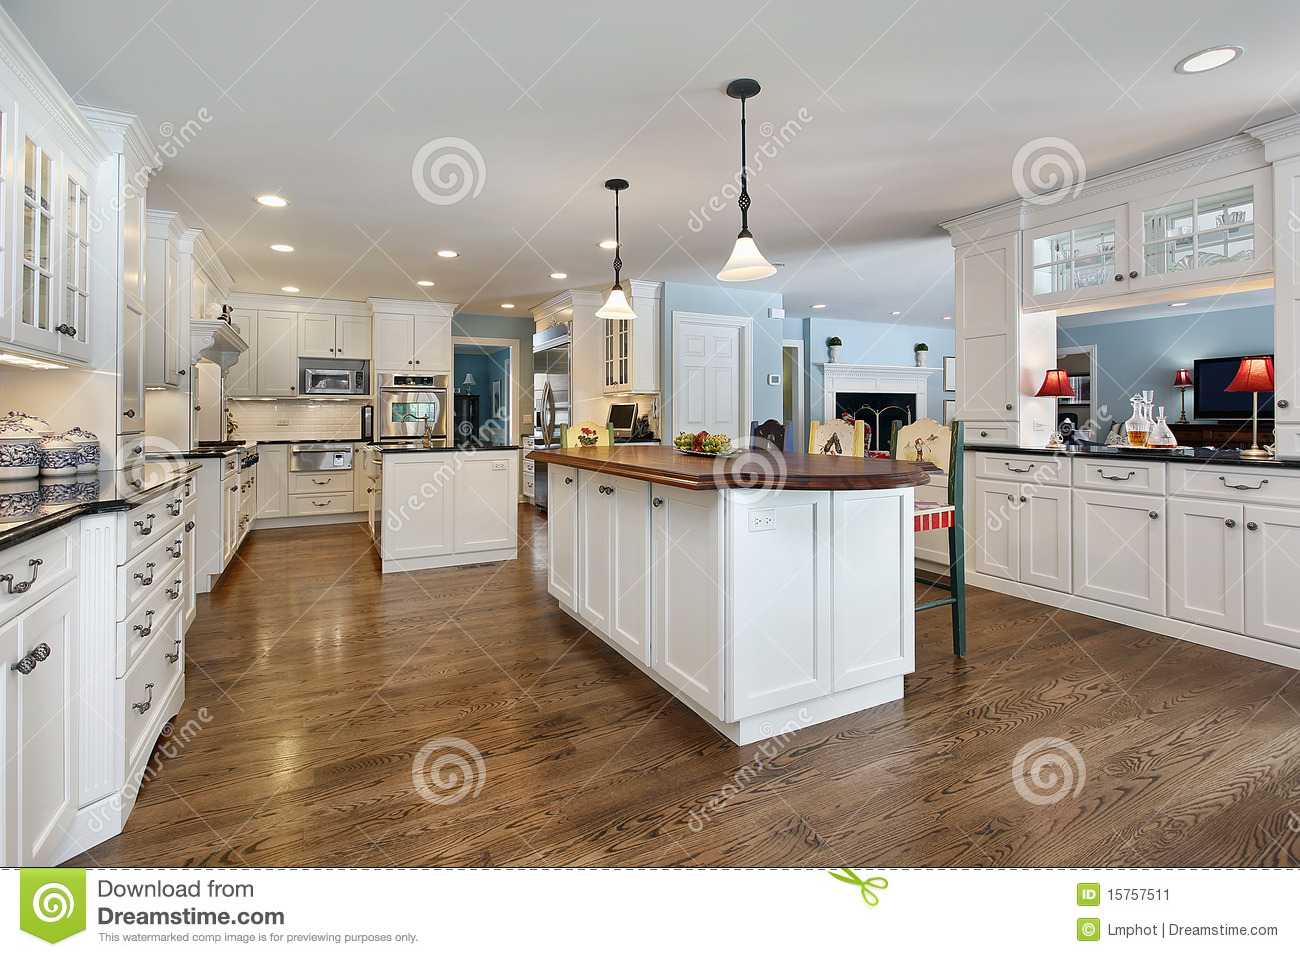 Kitchen With Wood Top Island Stock Image - Image: 15757511